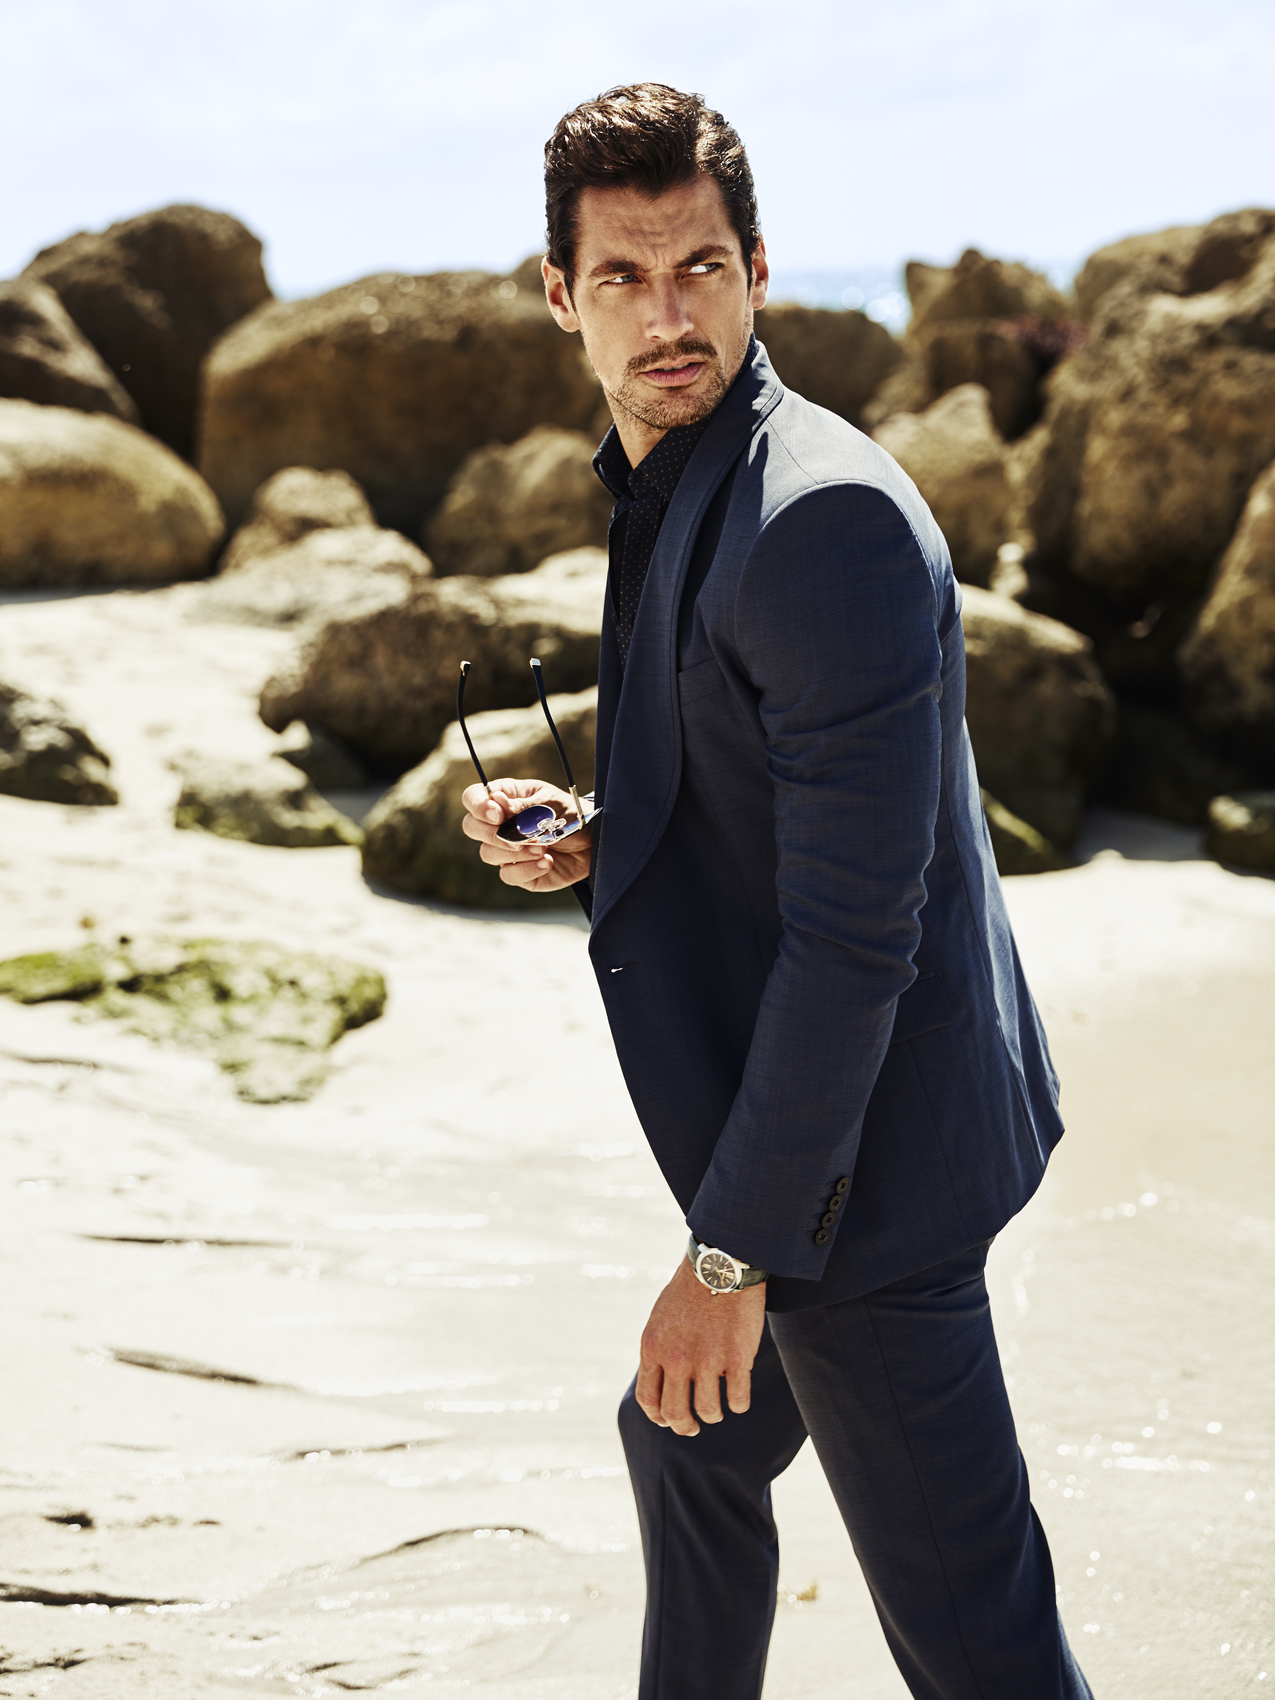 20150711_JR_DavidGandy_0627B_flat_web